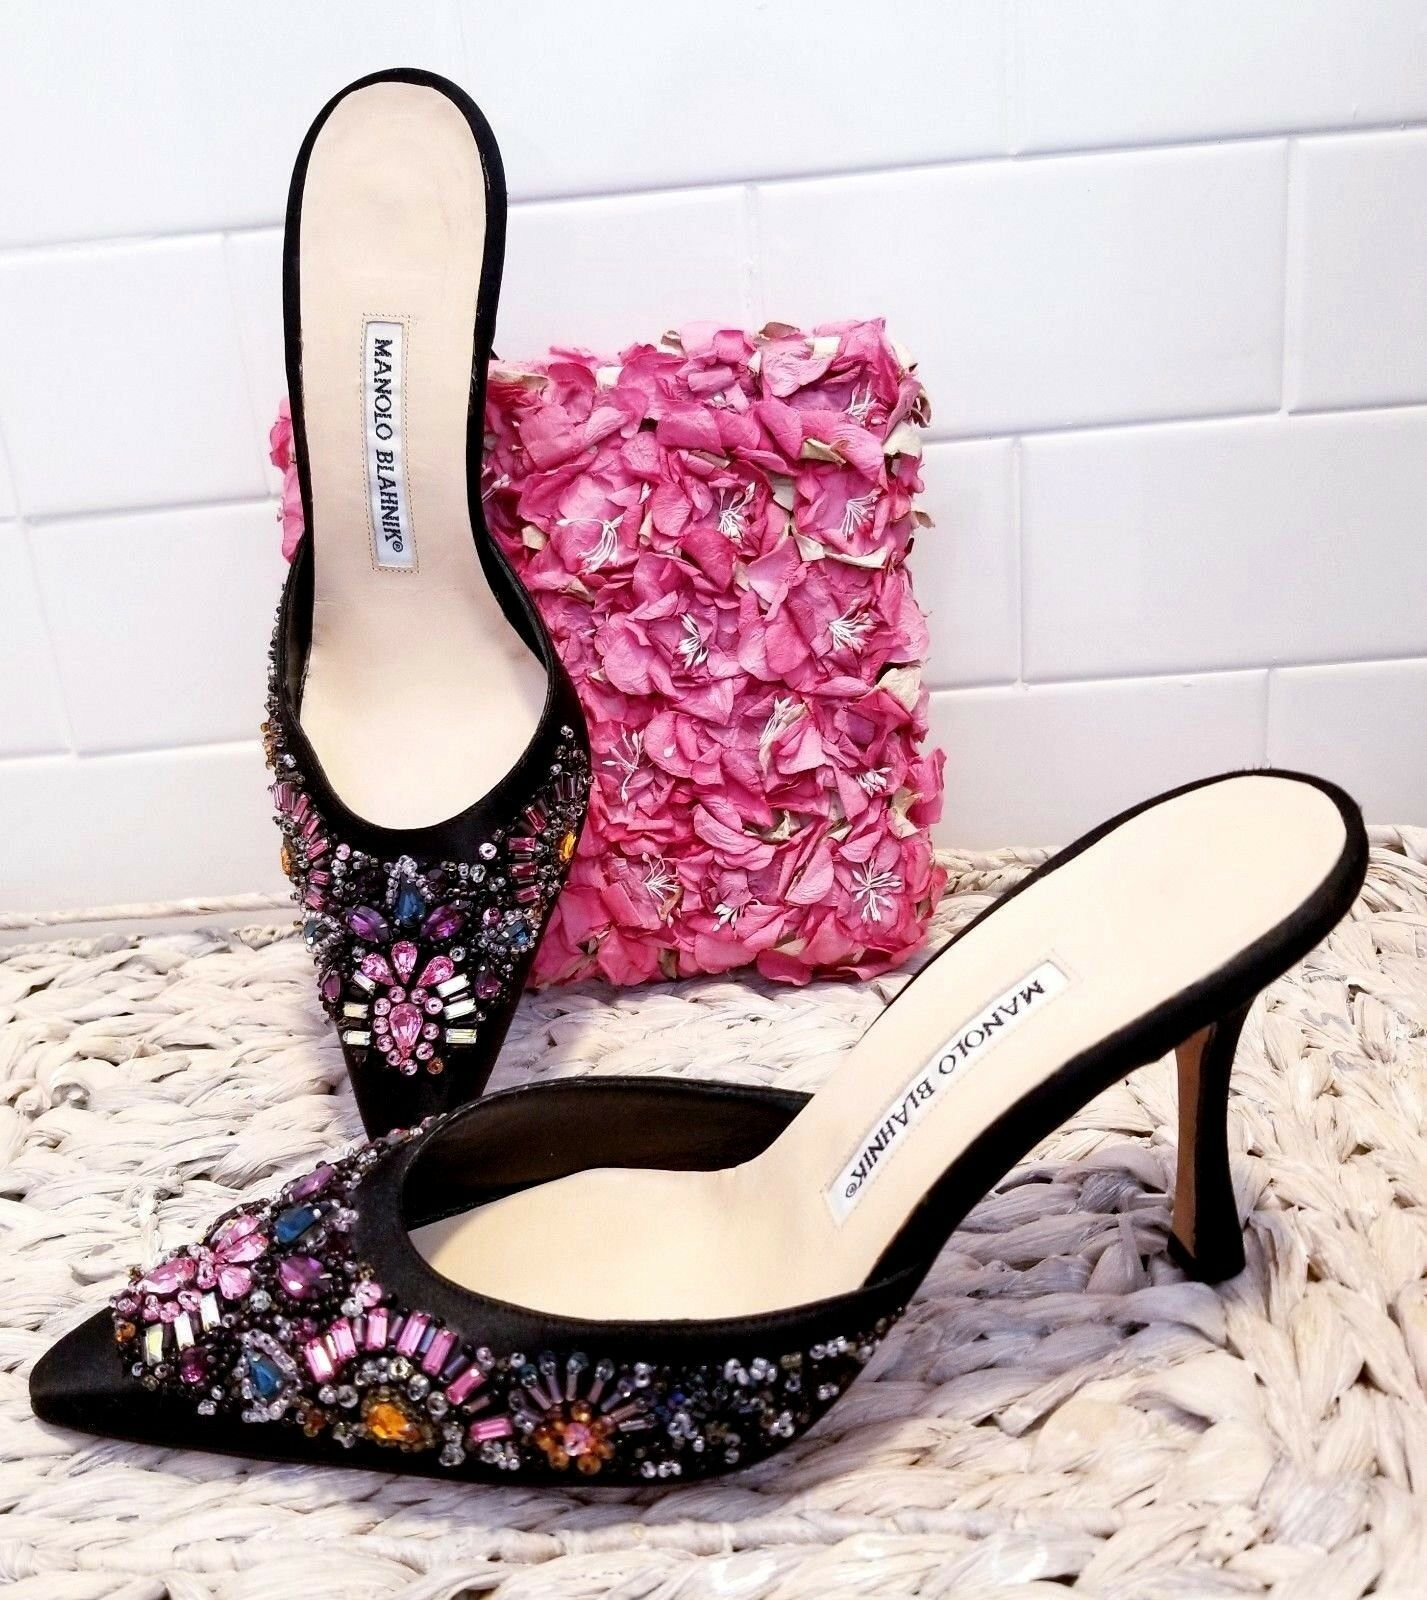 MANOLO BLAHNIK BLACK SATIN JEWELED CRYSTAL STILETTO HEELS SHOES MULES 39 9 $1.3K